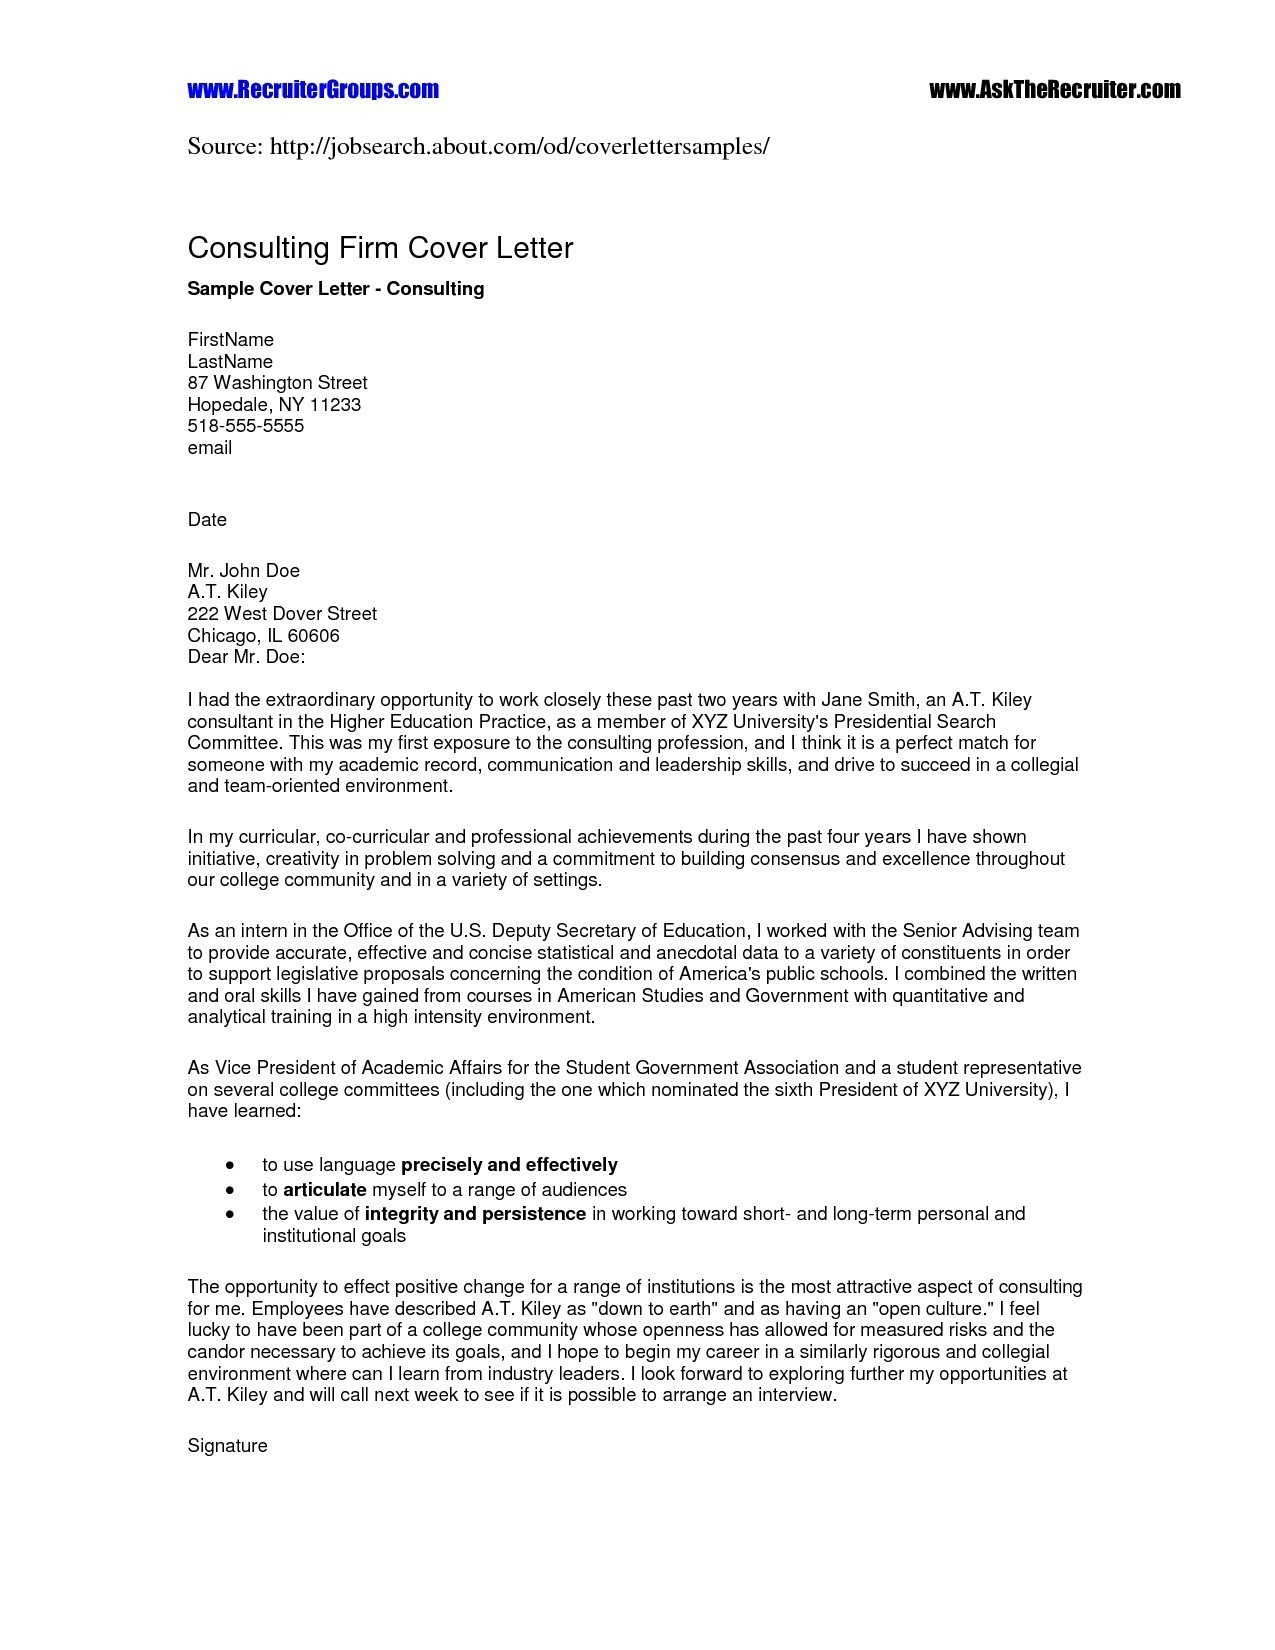 Free formal Grievance Letter Template - Grievance Letter Template south Africa Best Fresh without How to